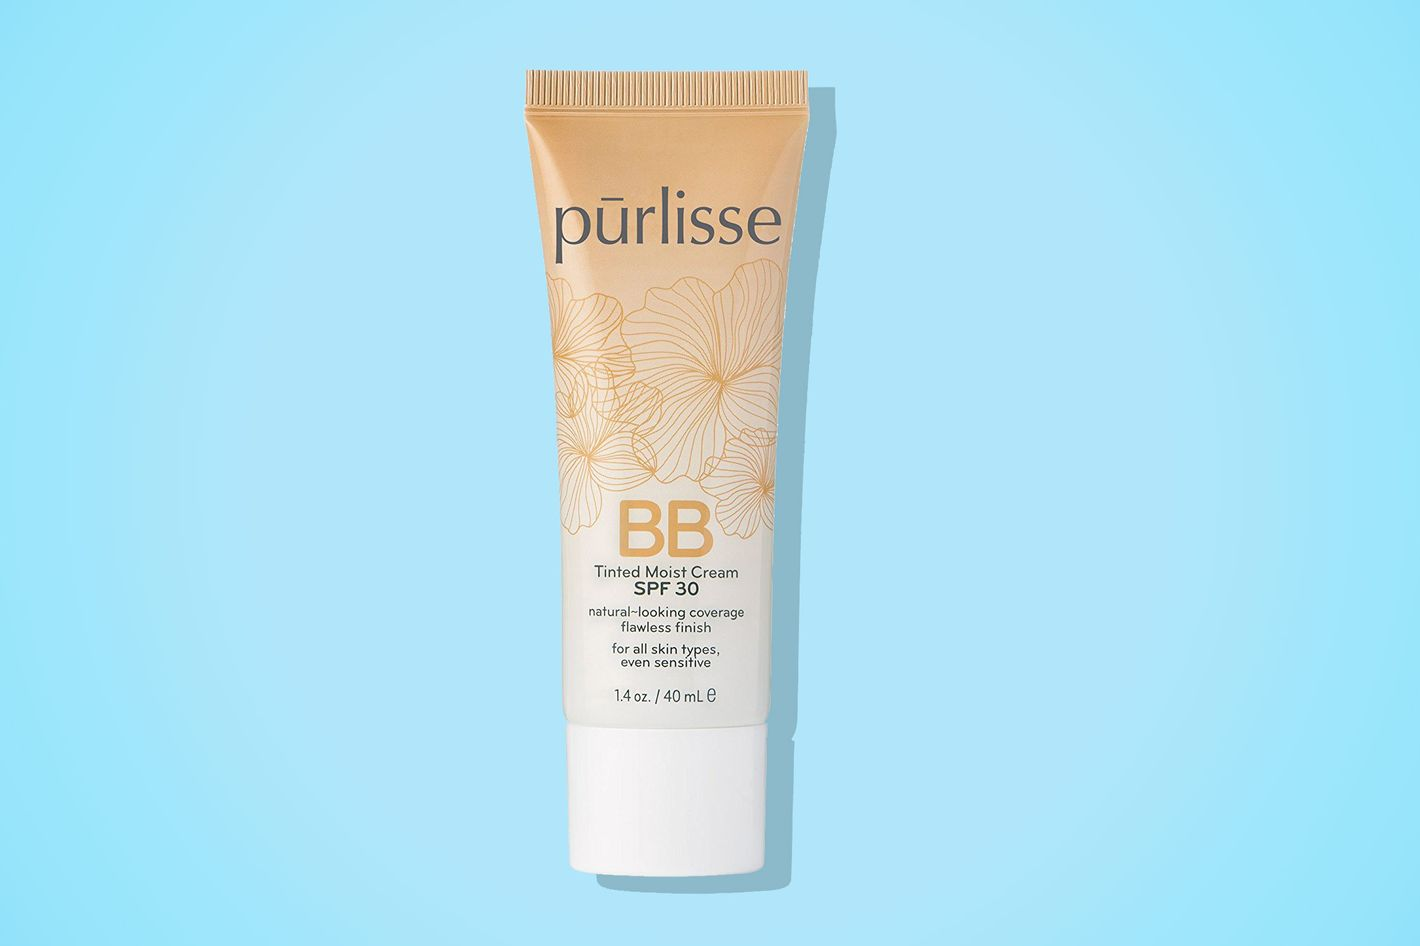 Purlisse BB Tinted Moist Cream